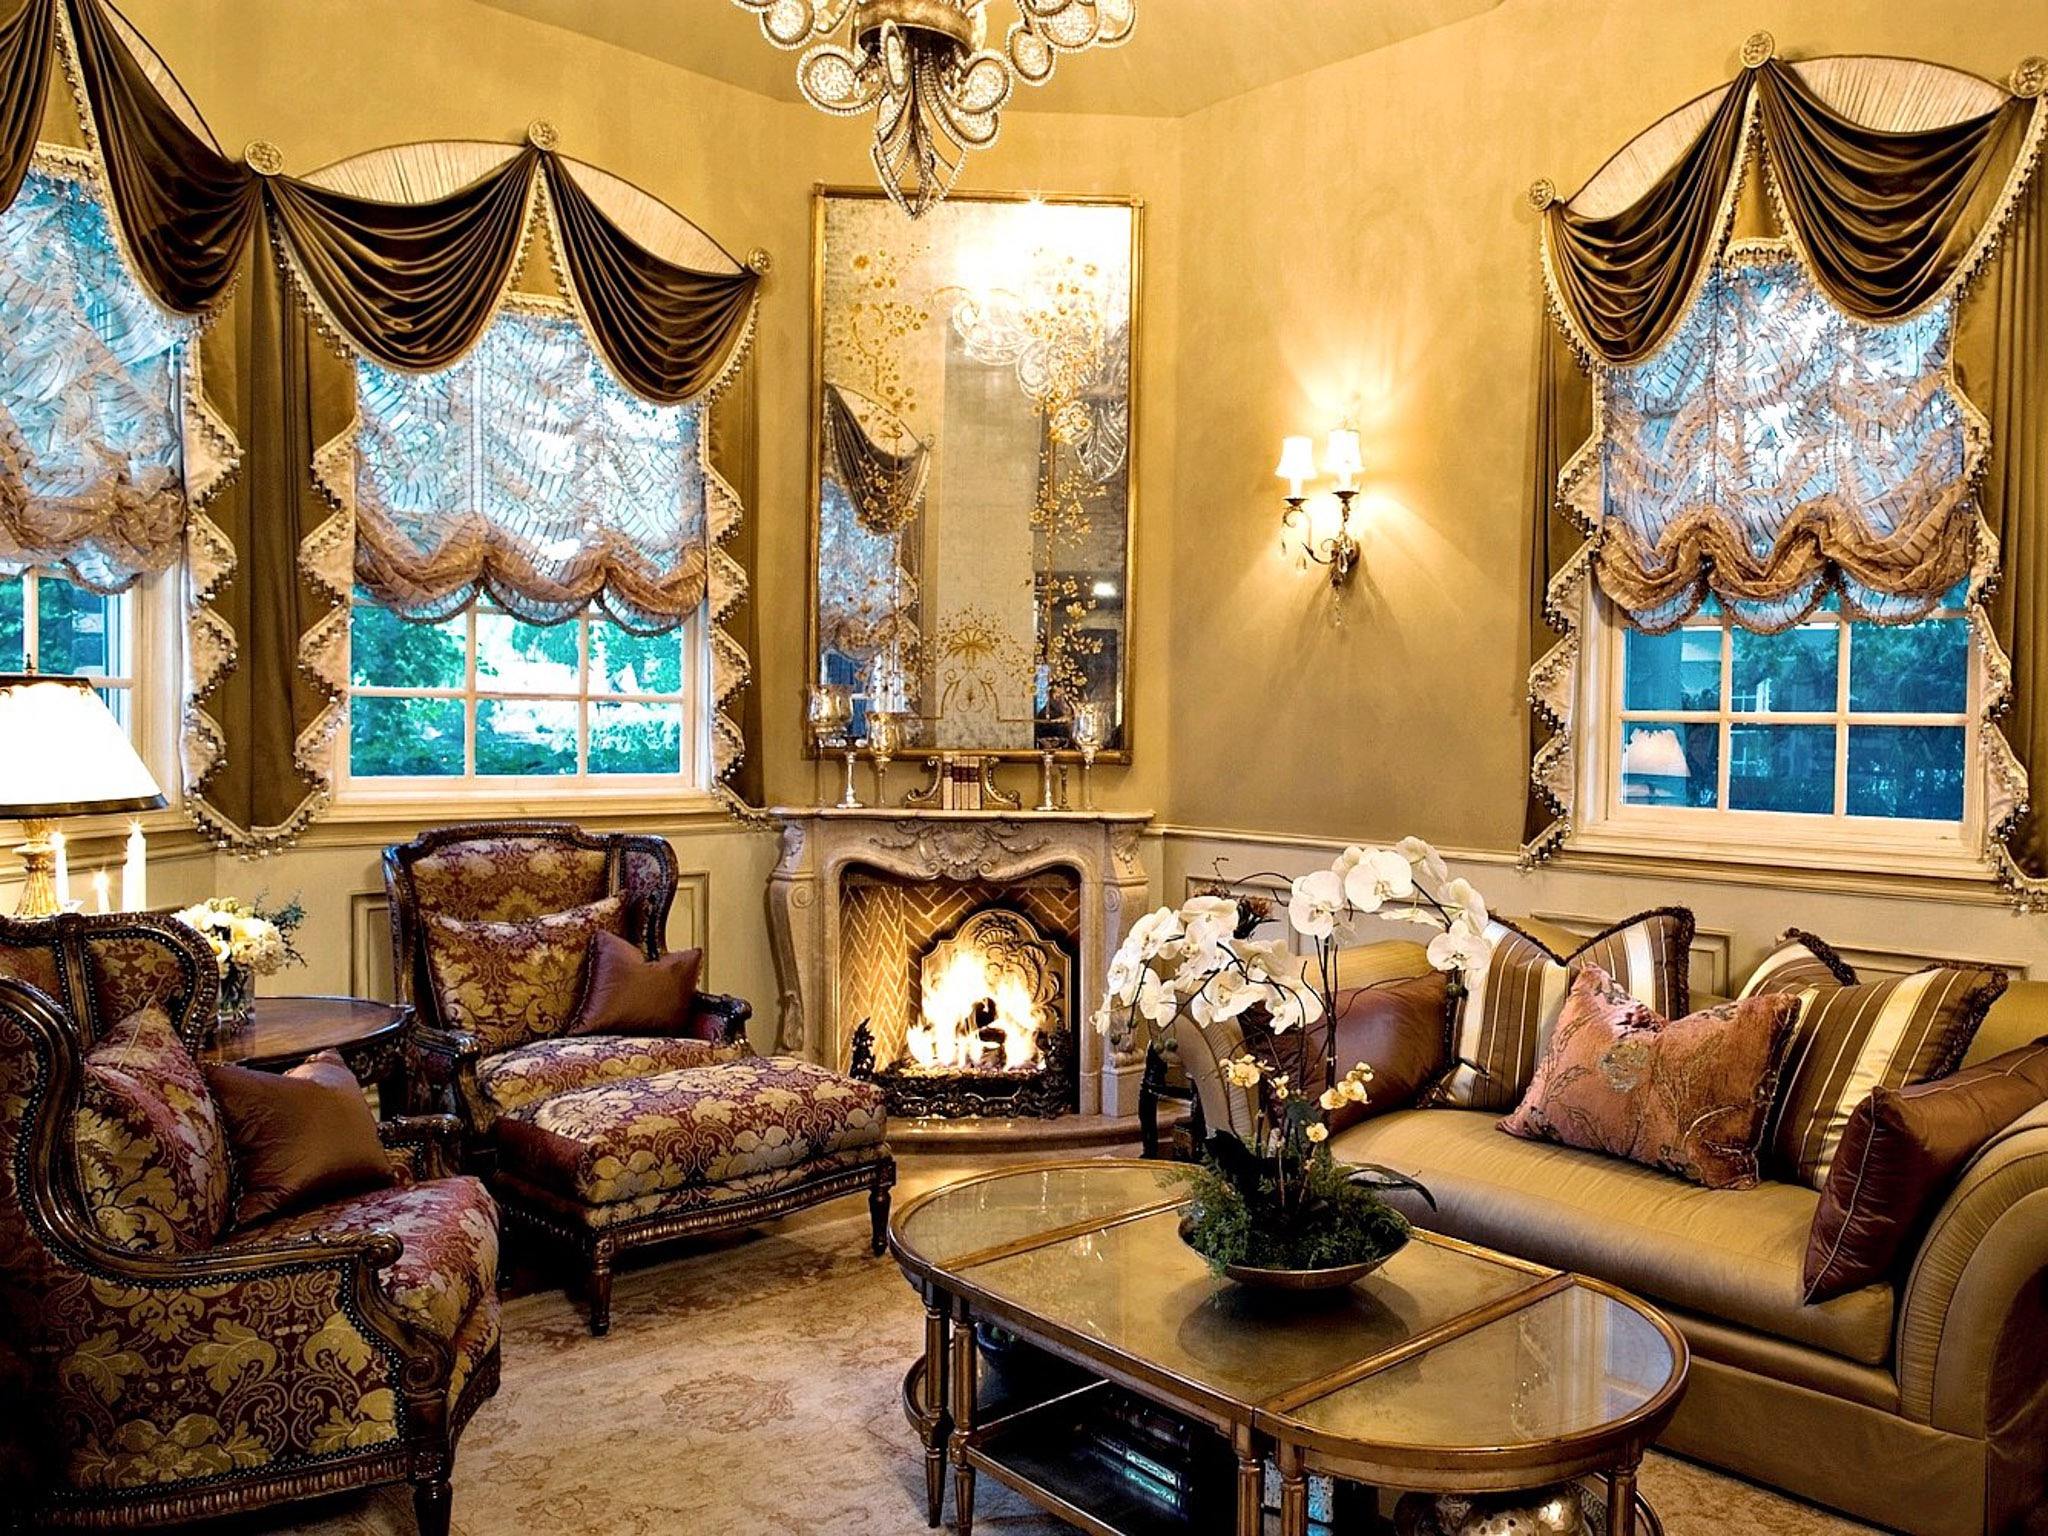 Italian Inspired Living Room Decor With Gold Love Seat And Burgundy Damask Wingback Chairs Surround An Oval Coffee Table (View 11 of 20)